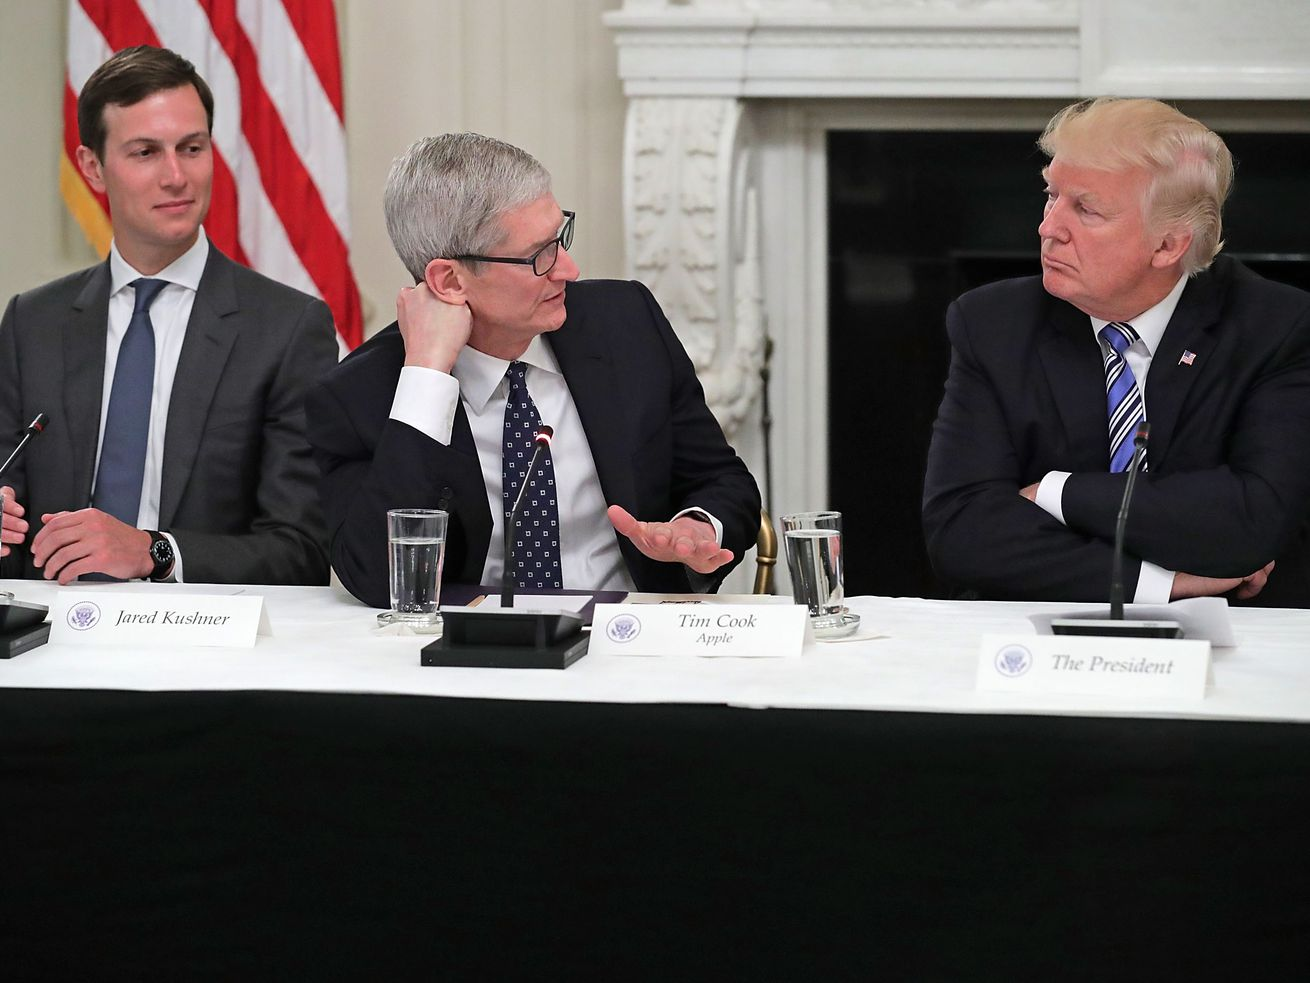 Apple CEO Tim Cook next to President Trump and Jared Kushner at a White House meeting on innovation and technology in June 2017.